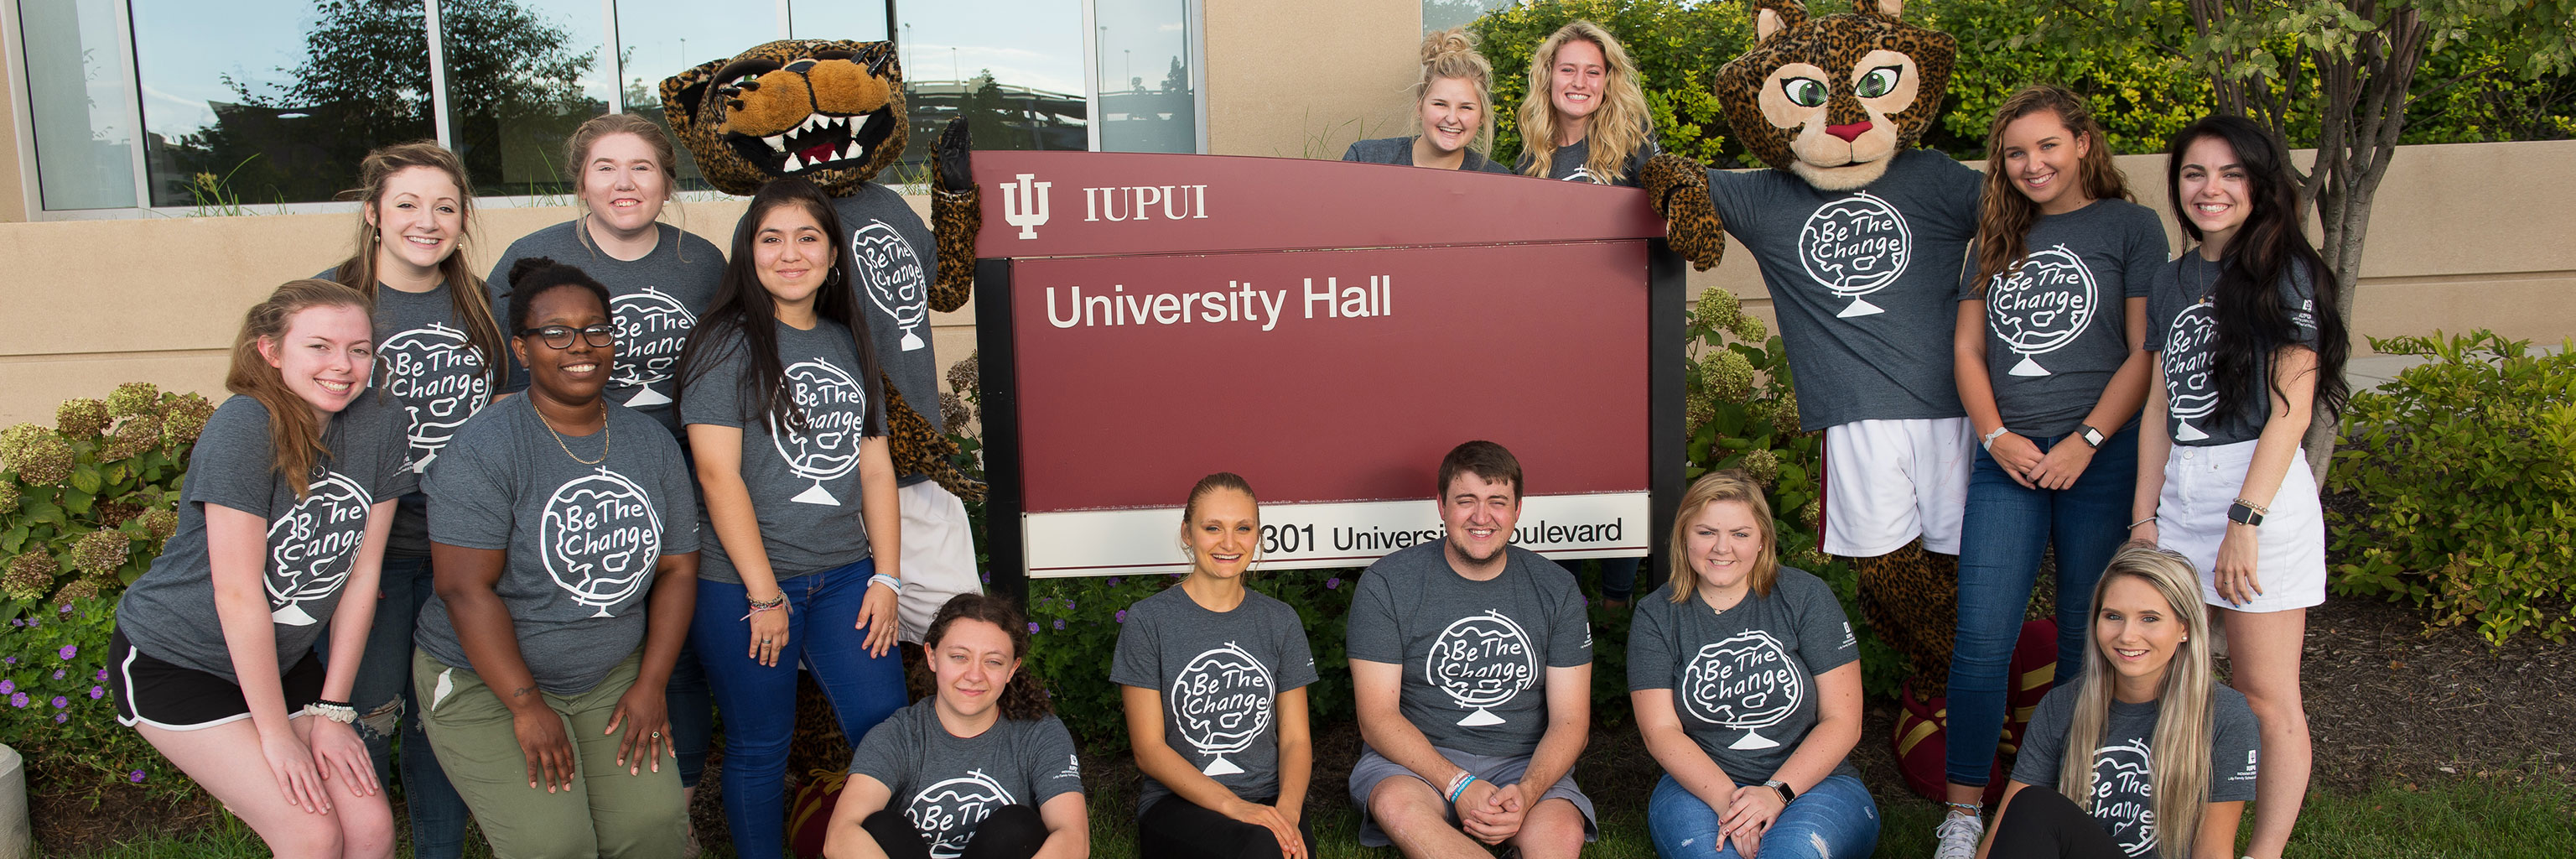 Students and IUPUI mascots at University Hall